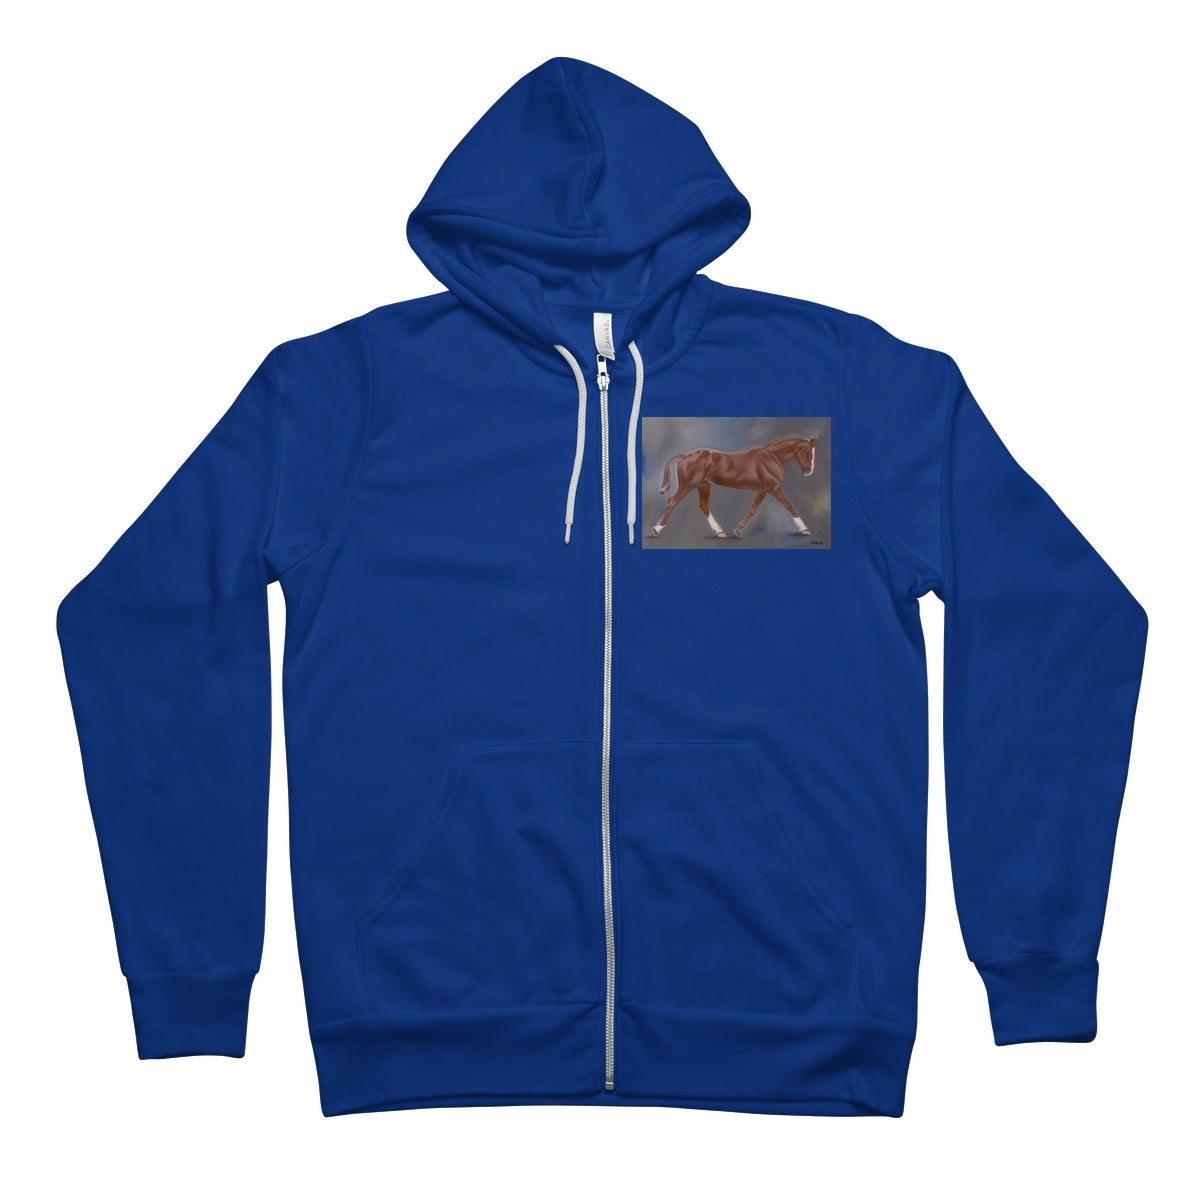 On Parade Unisex Full Zip Hoodie